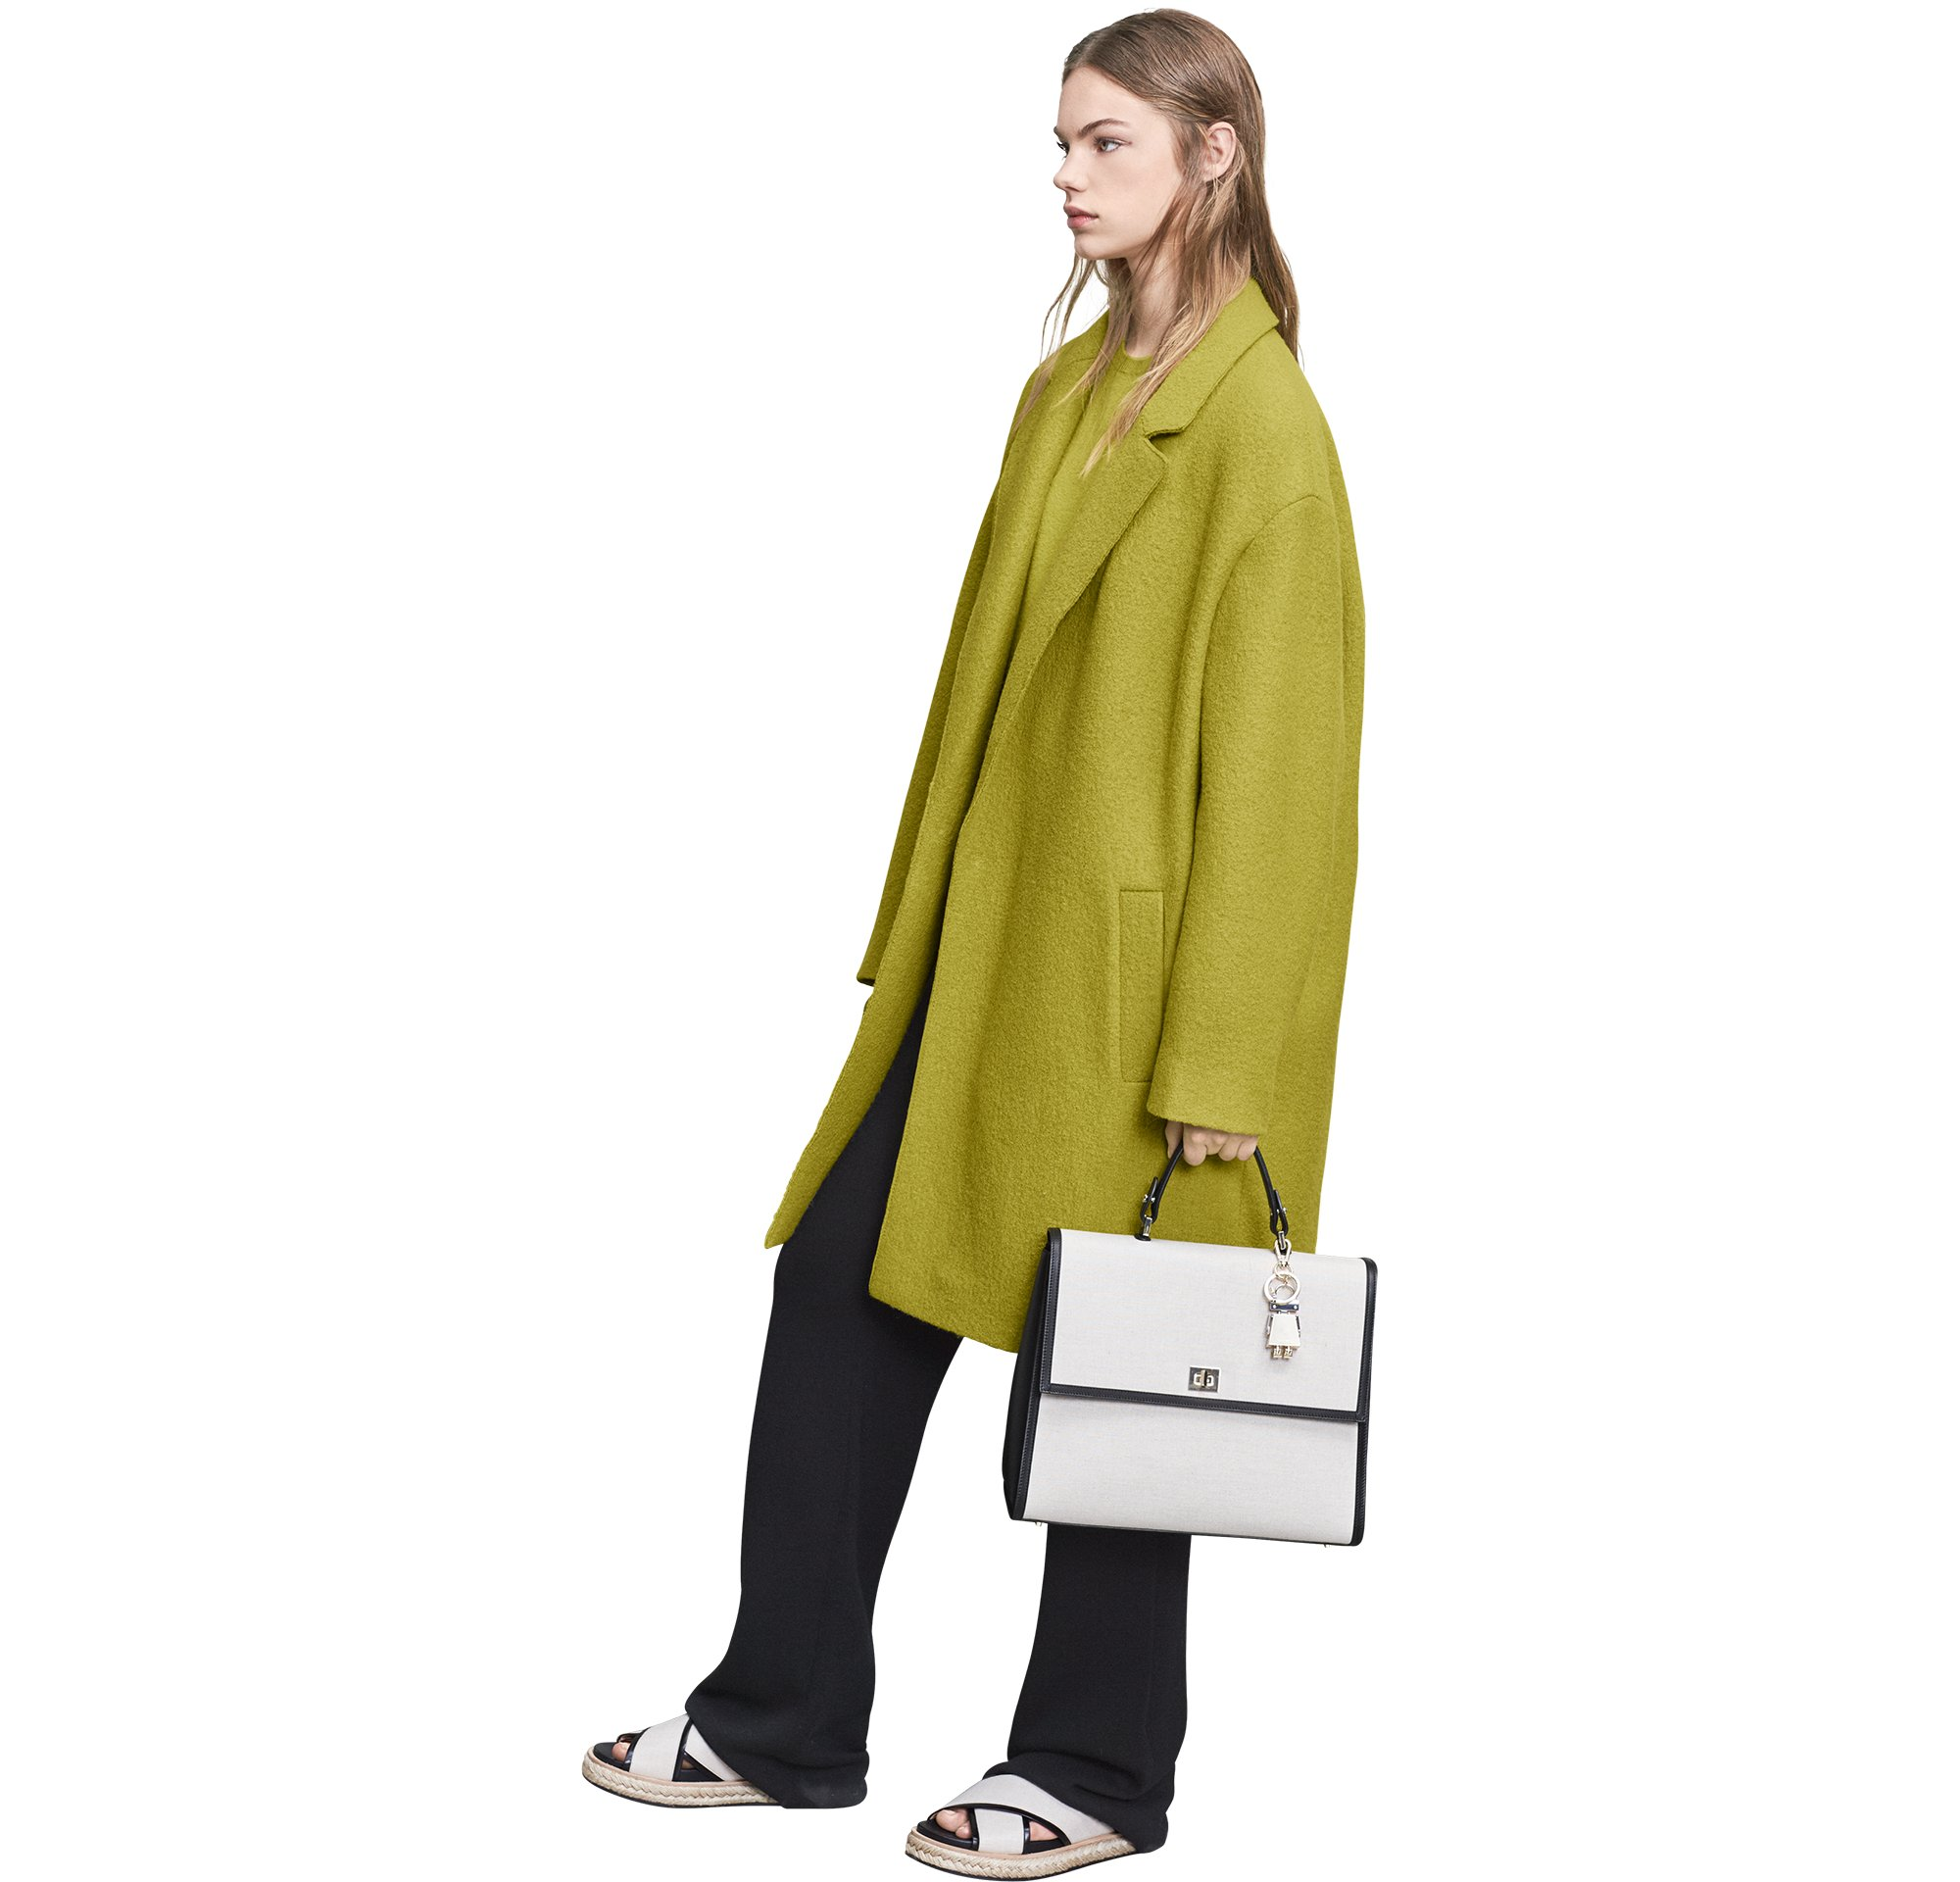 Coat, trousers, bag and shoes by BOSS Womenswear